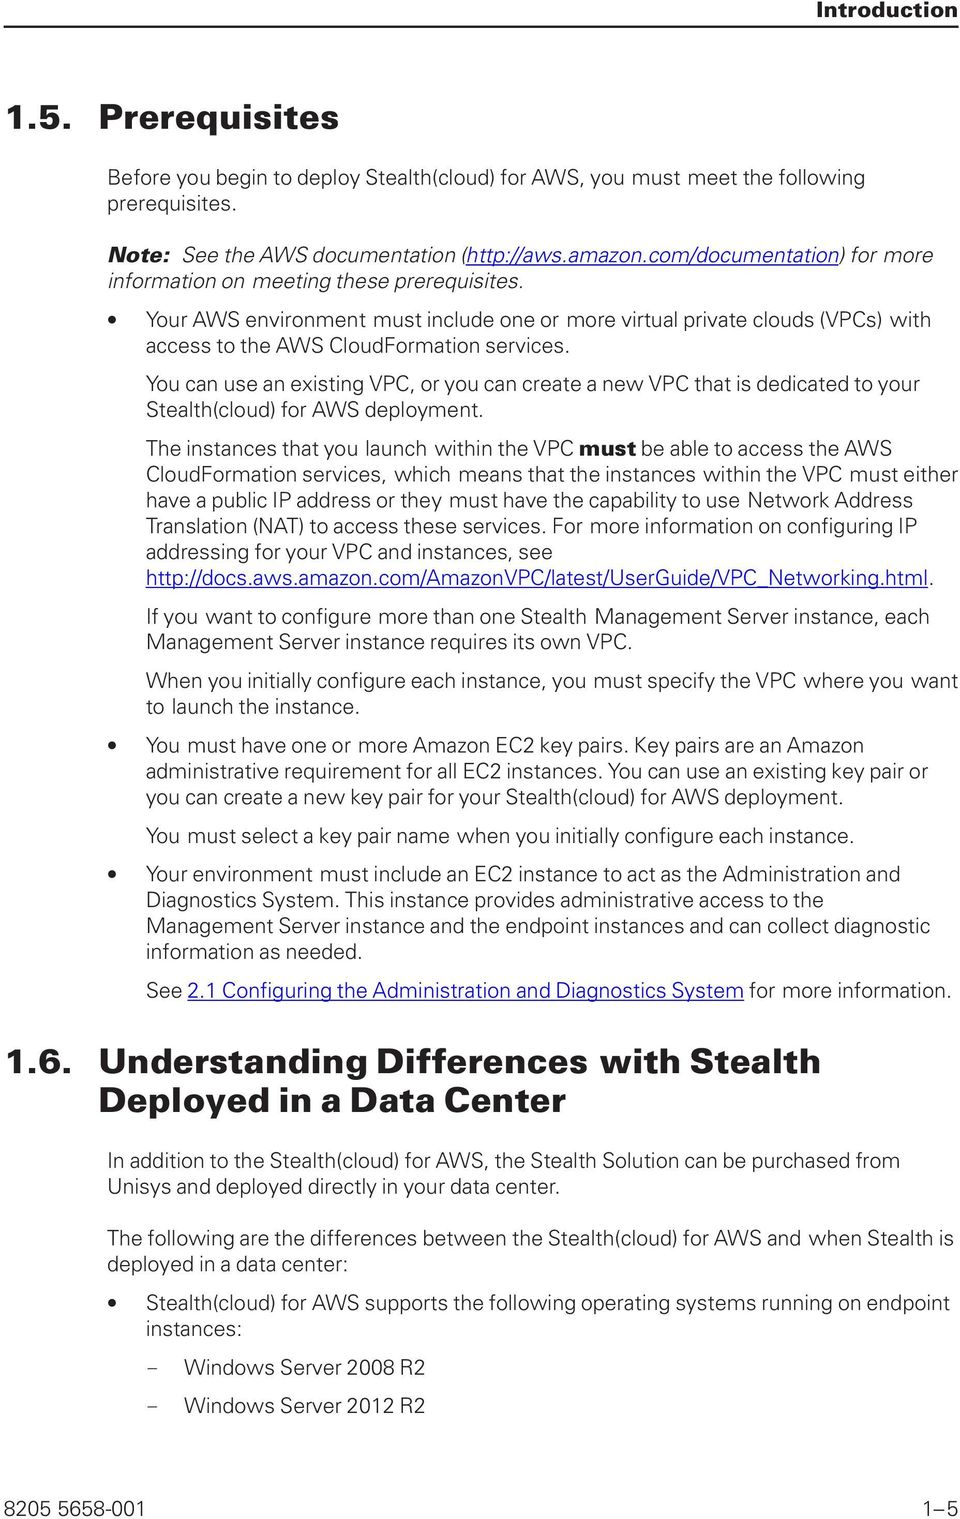 unisys Unisys Stealth(cloud) for Amazon Web Services